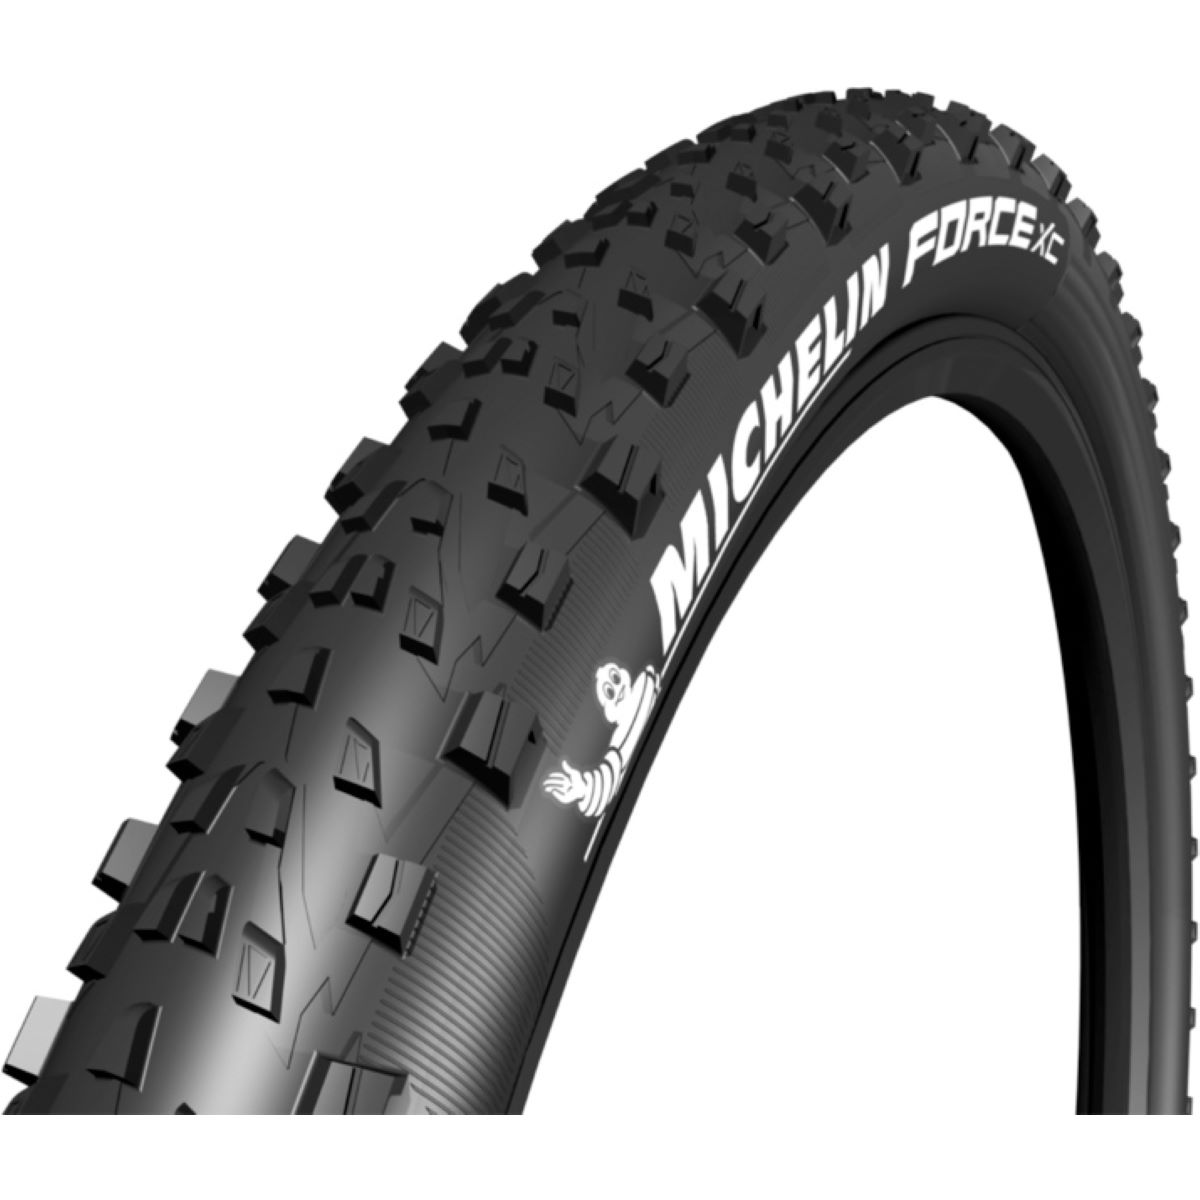 MICHELIN Michelin Force XC Competiition MTB Tyre   Tyres